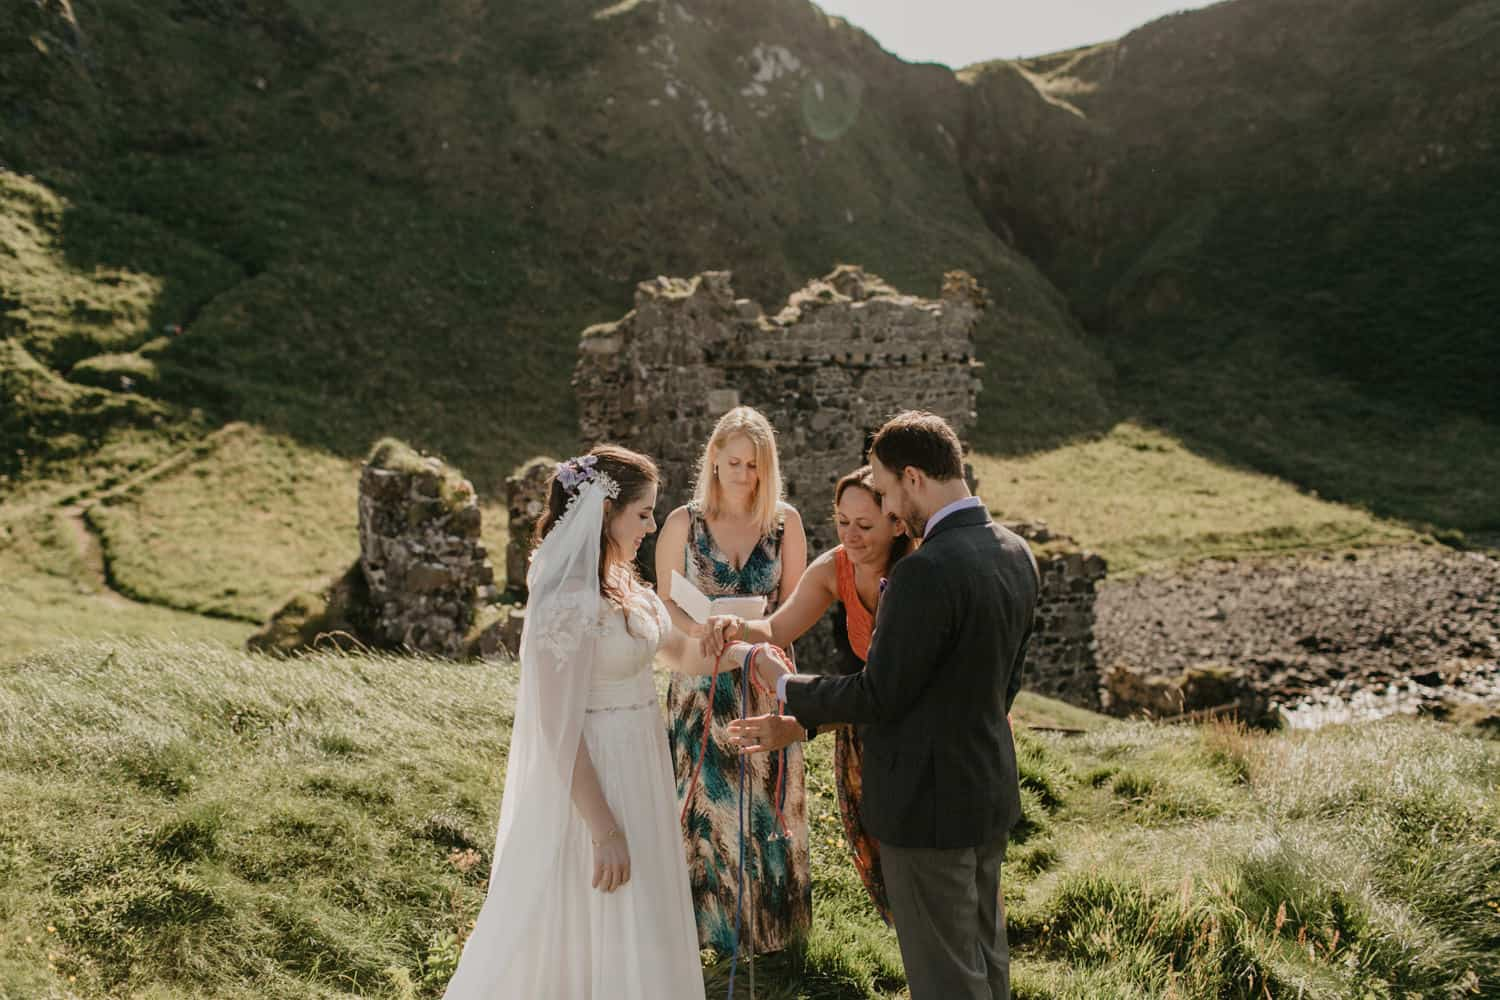 How to Include Family In Your Elopement